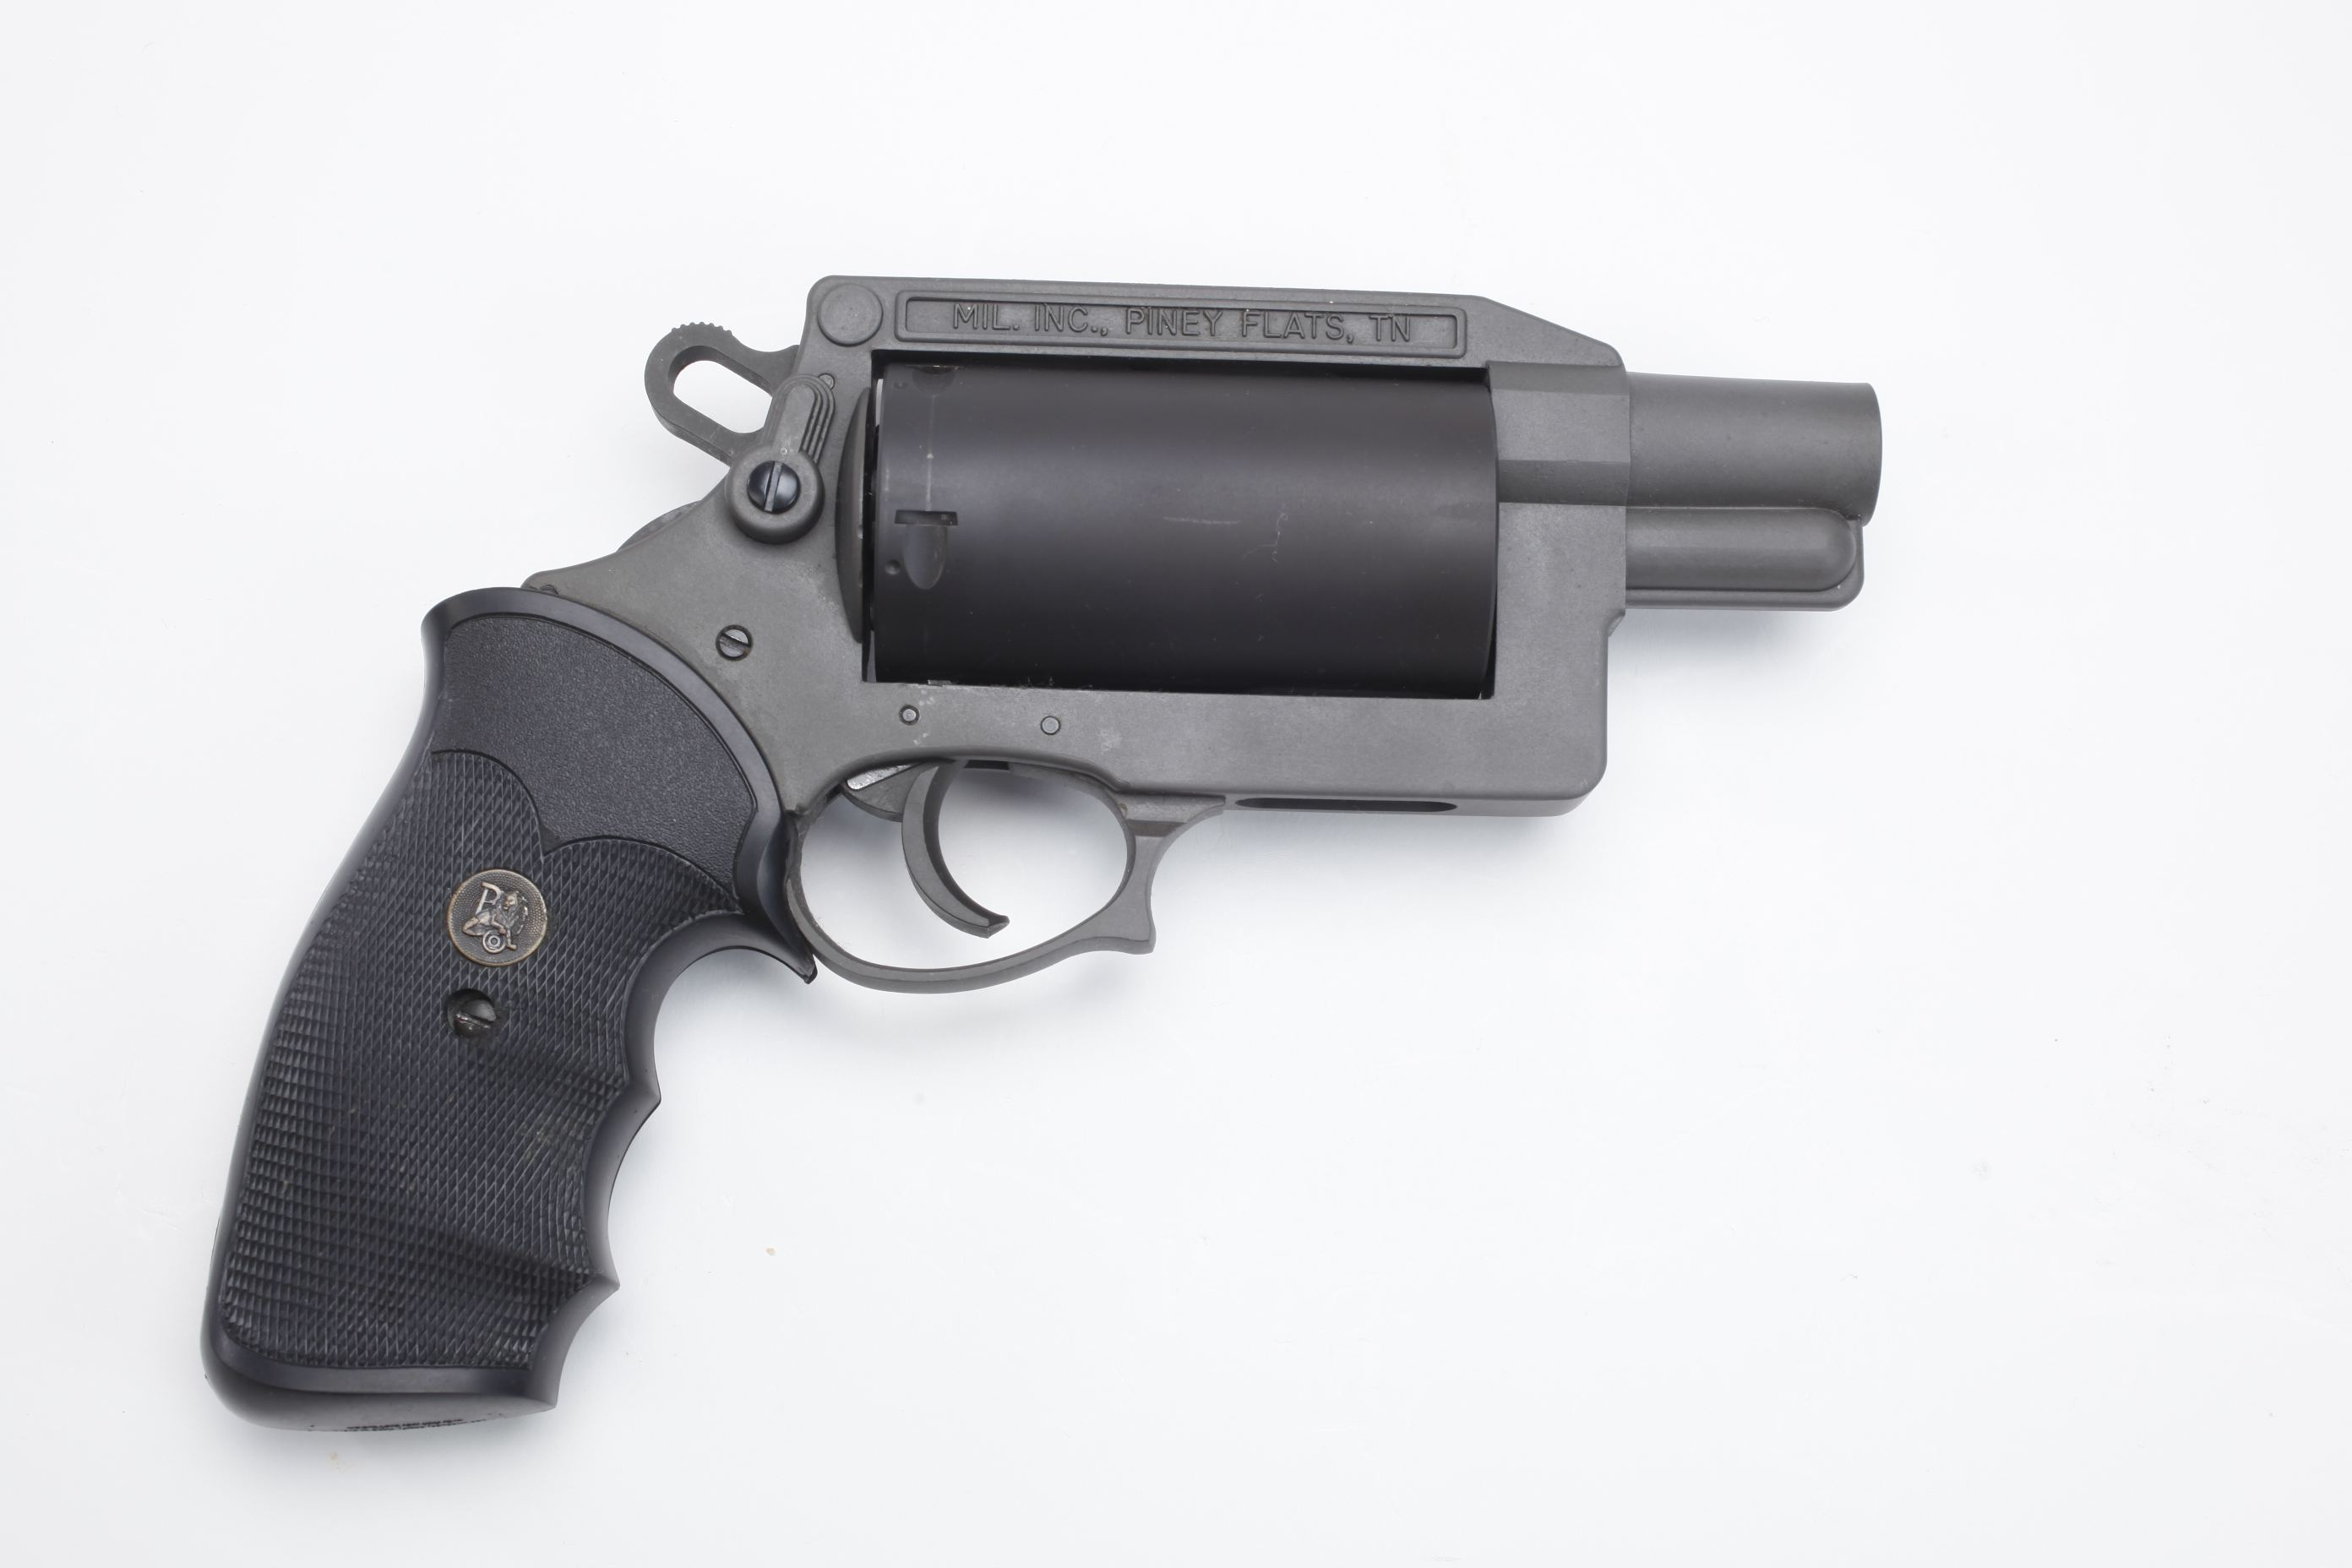 MIL Inc Thunder Five revolver